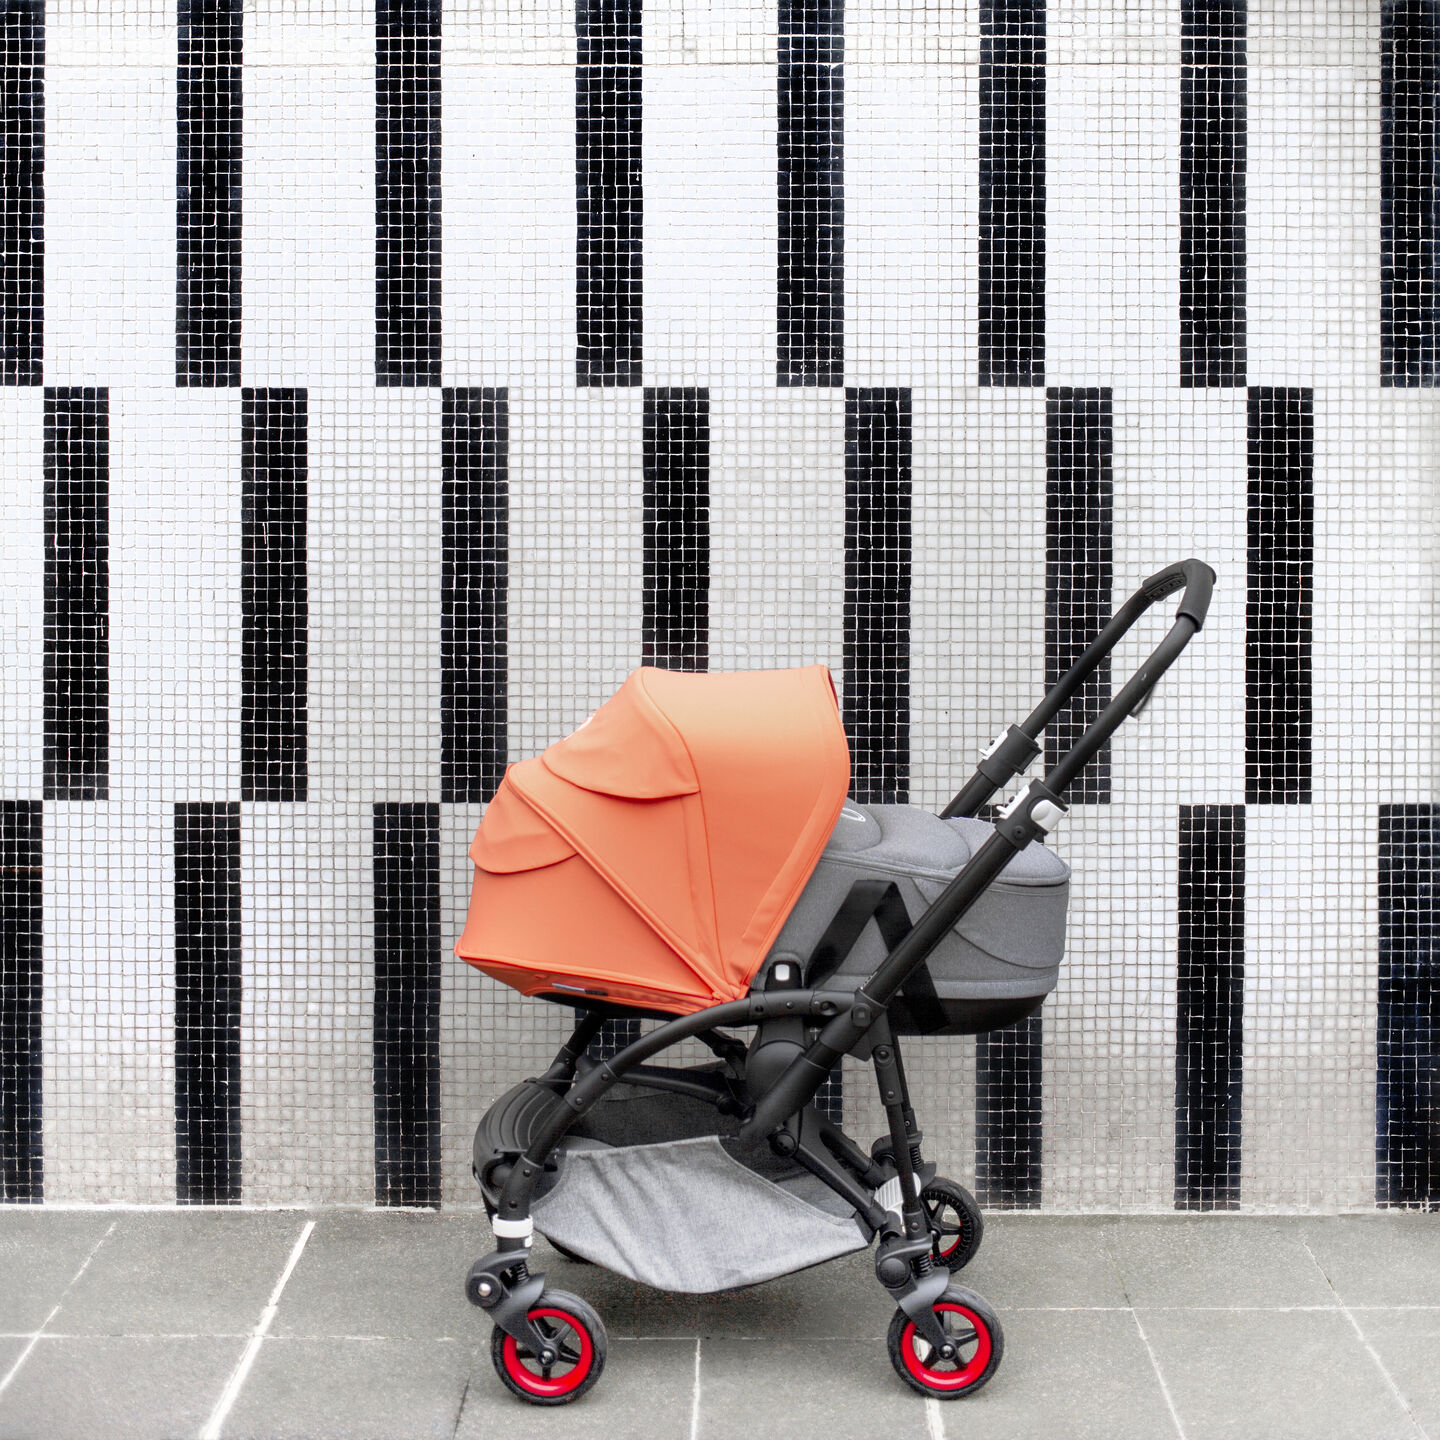 BLOG Follow the Bugaboo Bee 5 Coral on its trip around the world